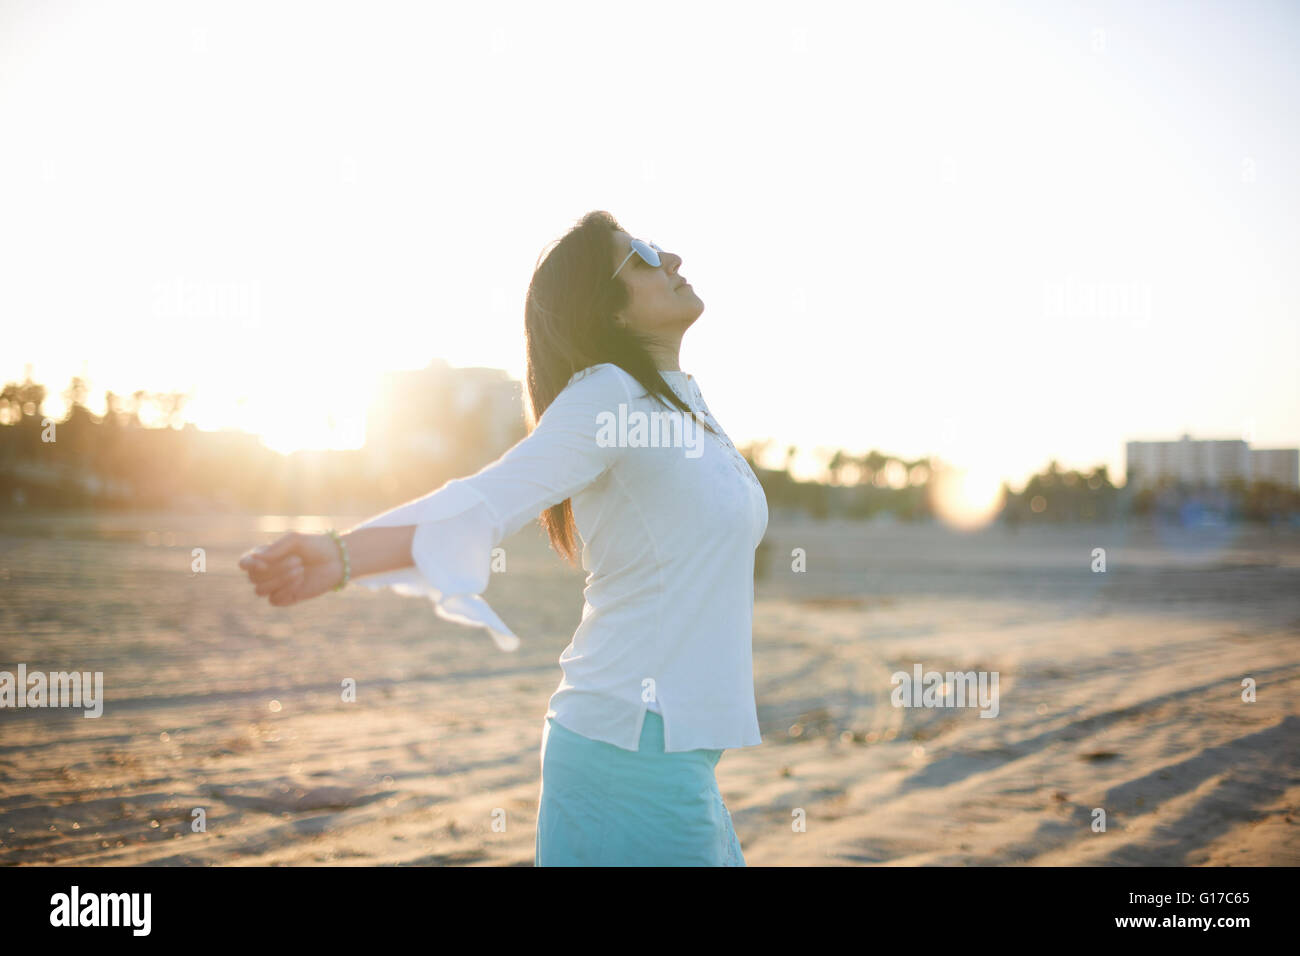 Woman with arms open on Santa Monica beach at sunset, Cresent City, California, USA - Stock Image